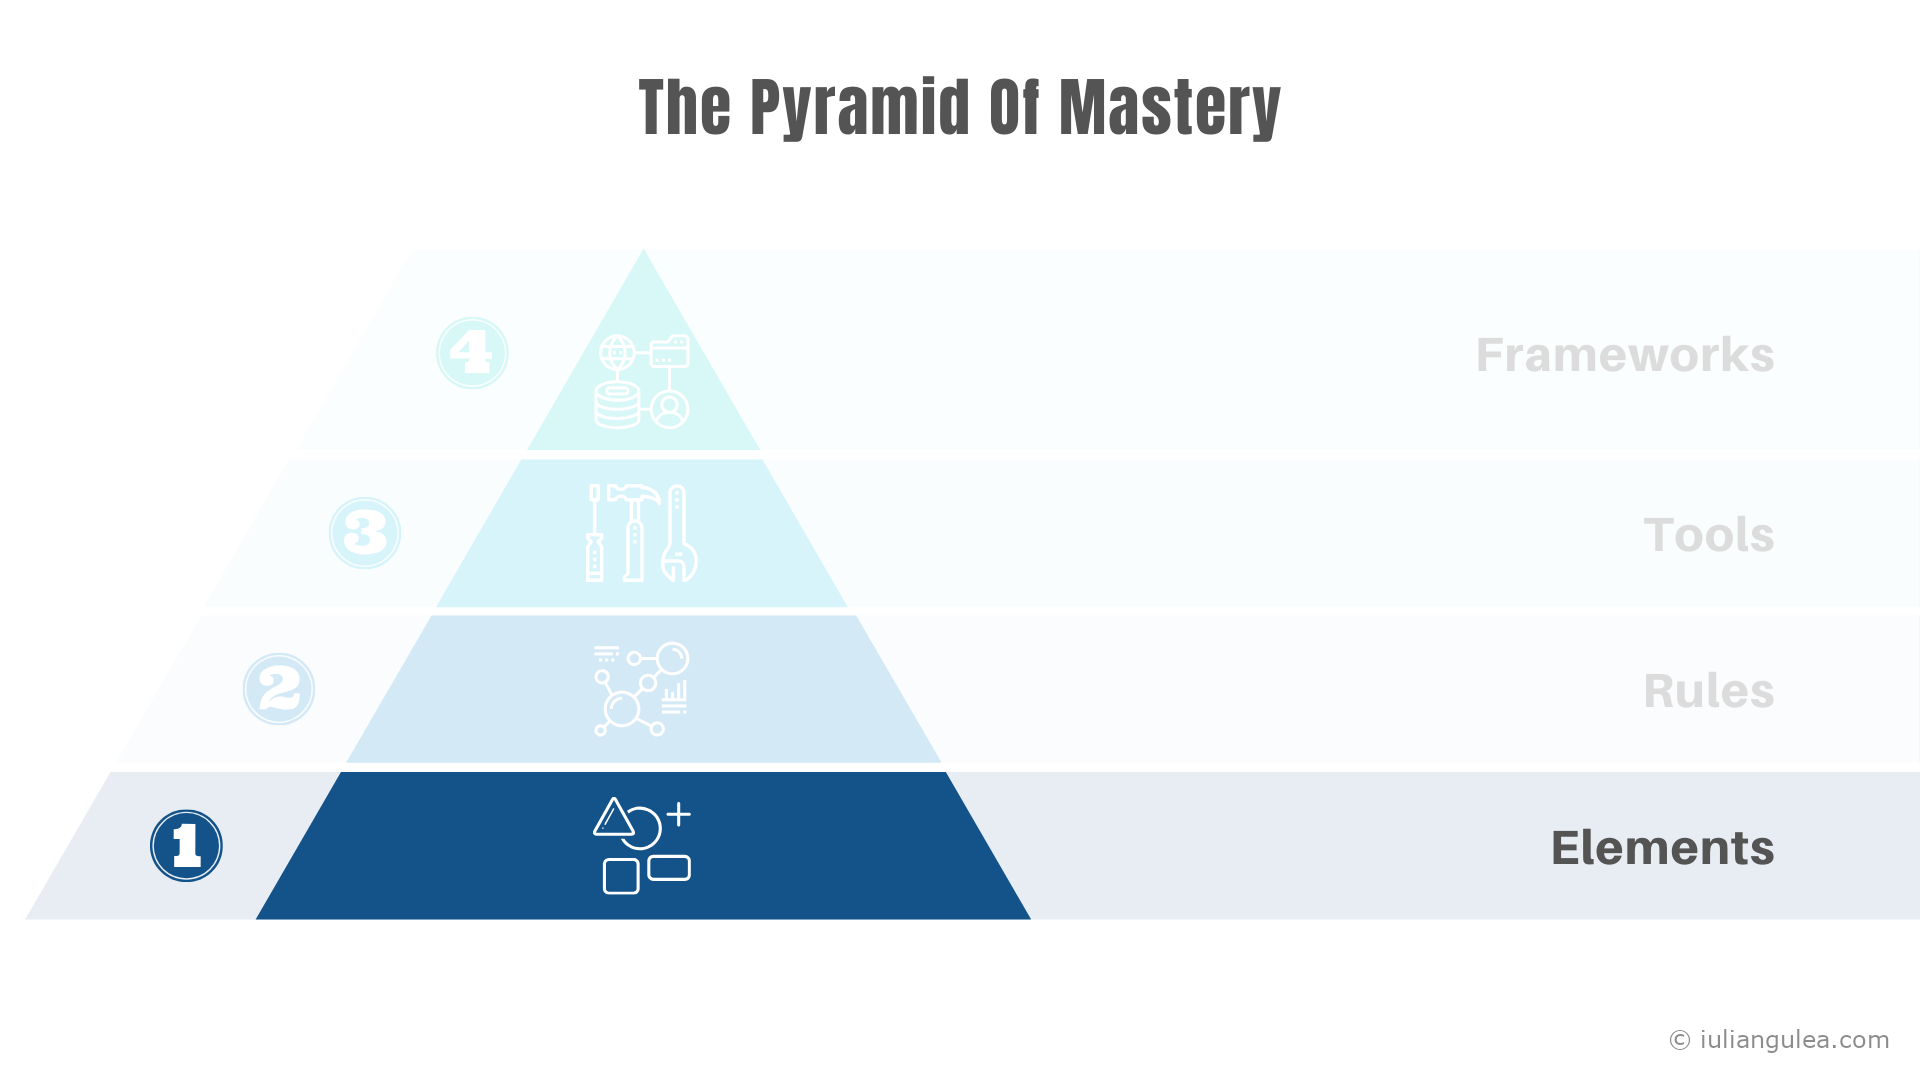 The Pyramid Of Mastery - The Elements